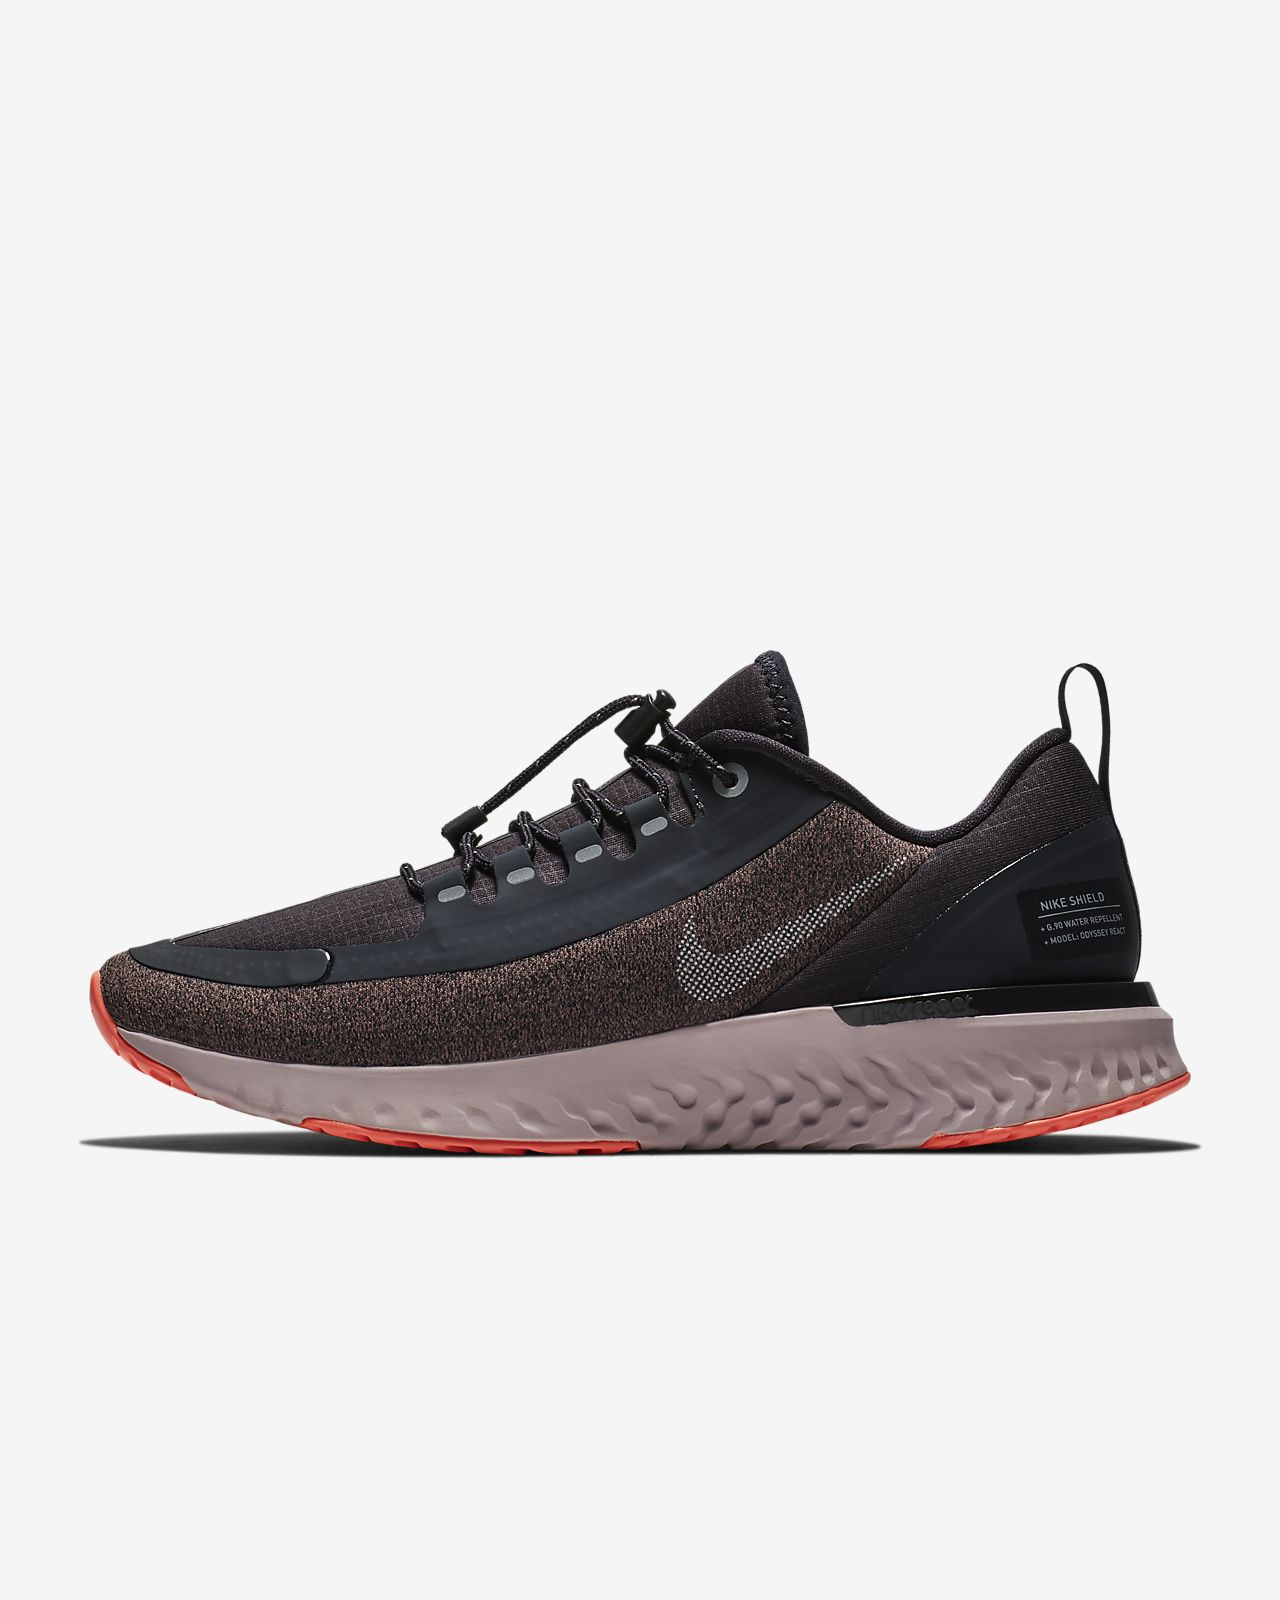 Calzado de running para mujer Nike Odyssey React Shield Water Repellent